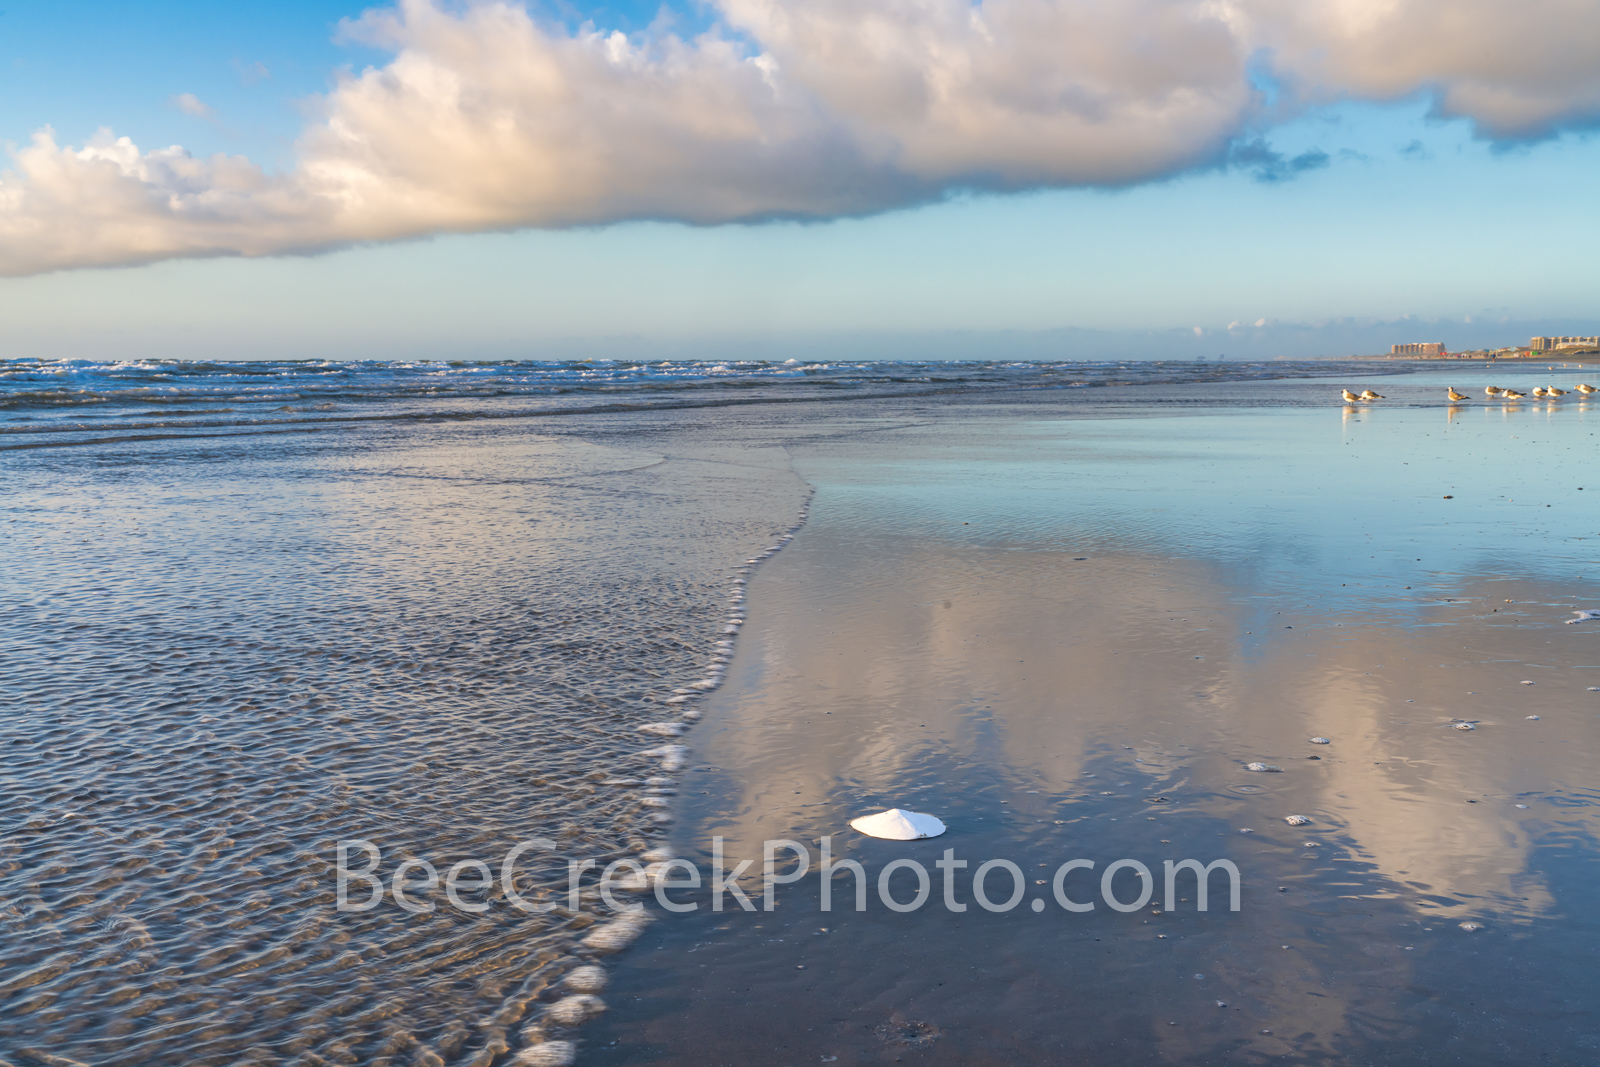 Beach Sand Dollar Reflection - This was right after sunrise looking down the beach as the clouds in the sky reflected nicely...